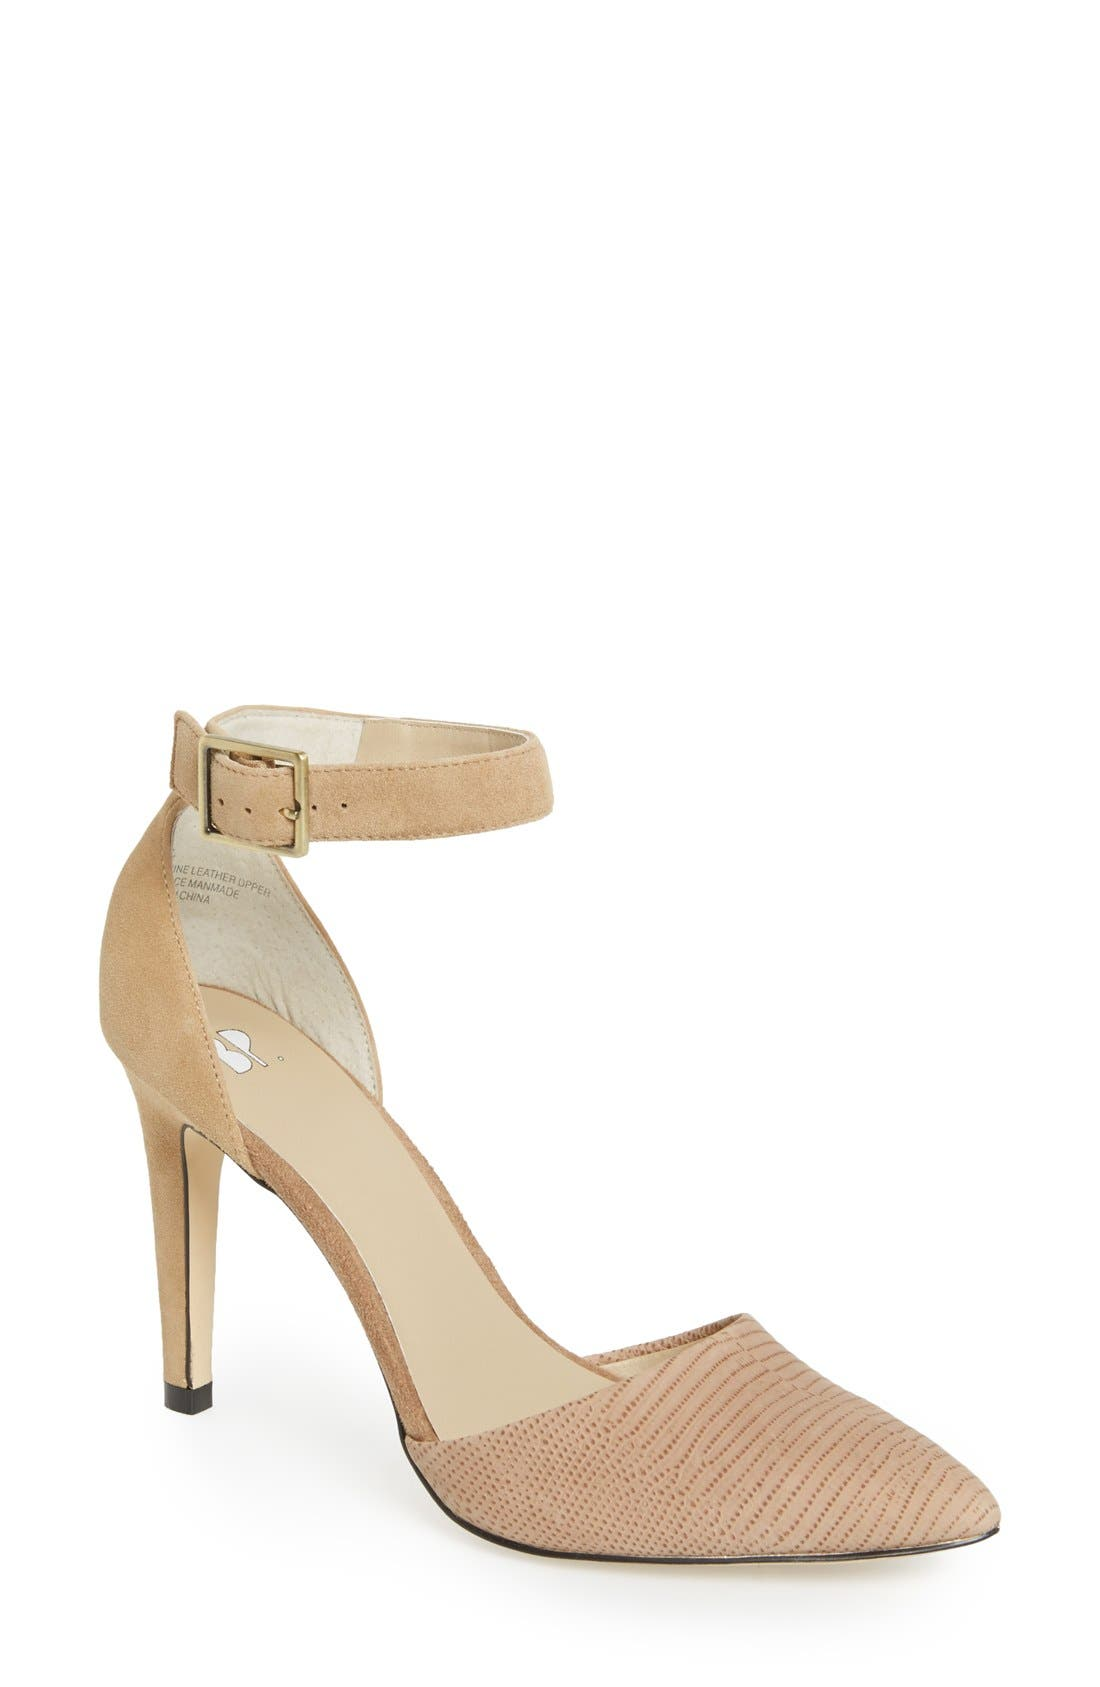 'Mallory' Ankle Strap Pump,                             Main thumbnail 1, color,                             Beige/ Nude